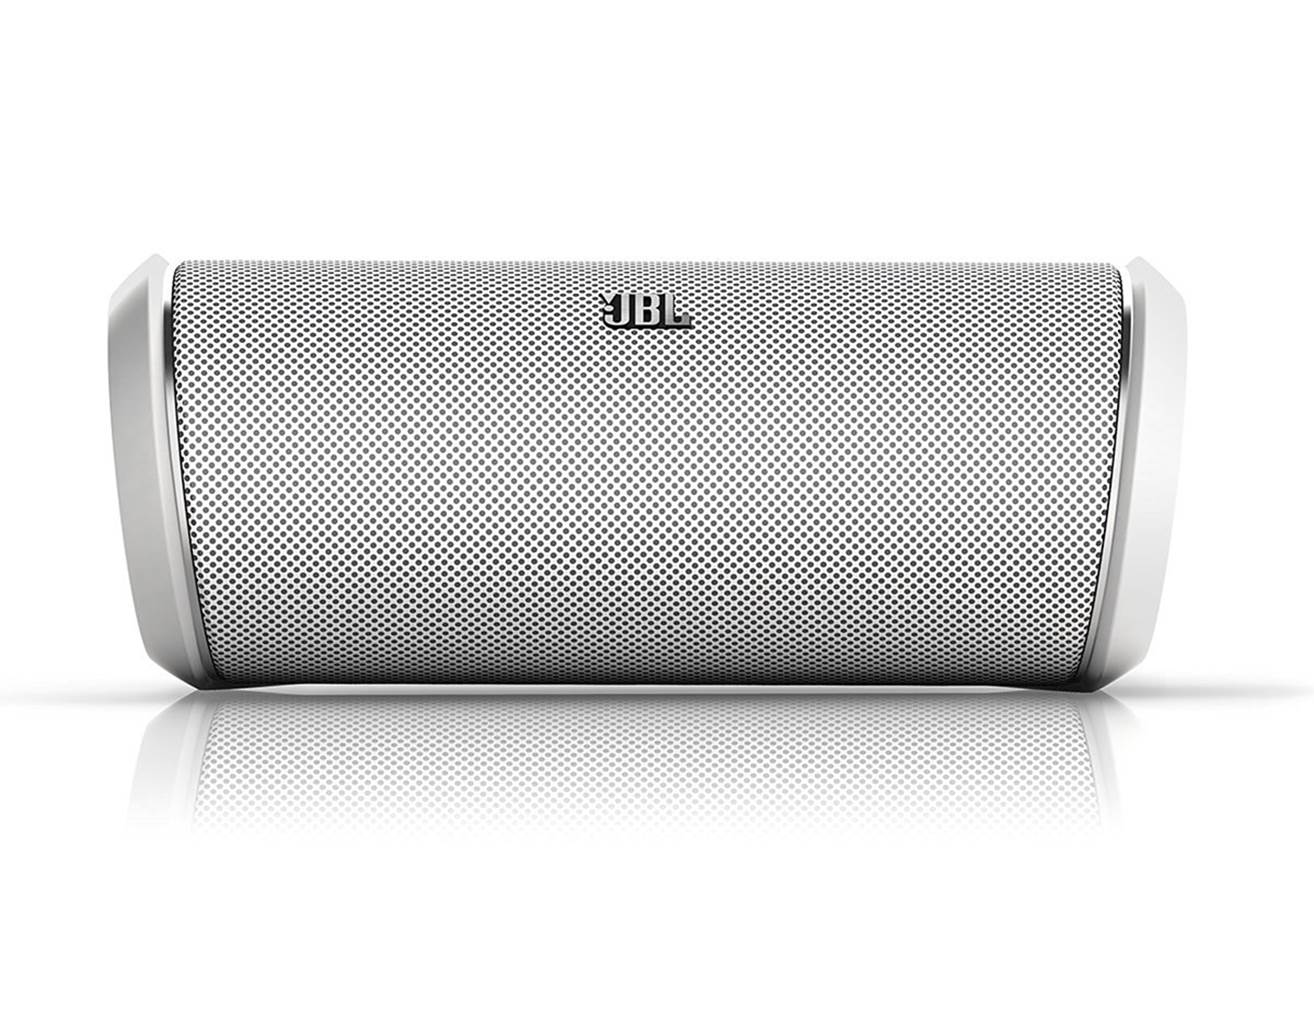 JBL Flip 2 Best Bluetooth Speakers under 100